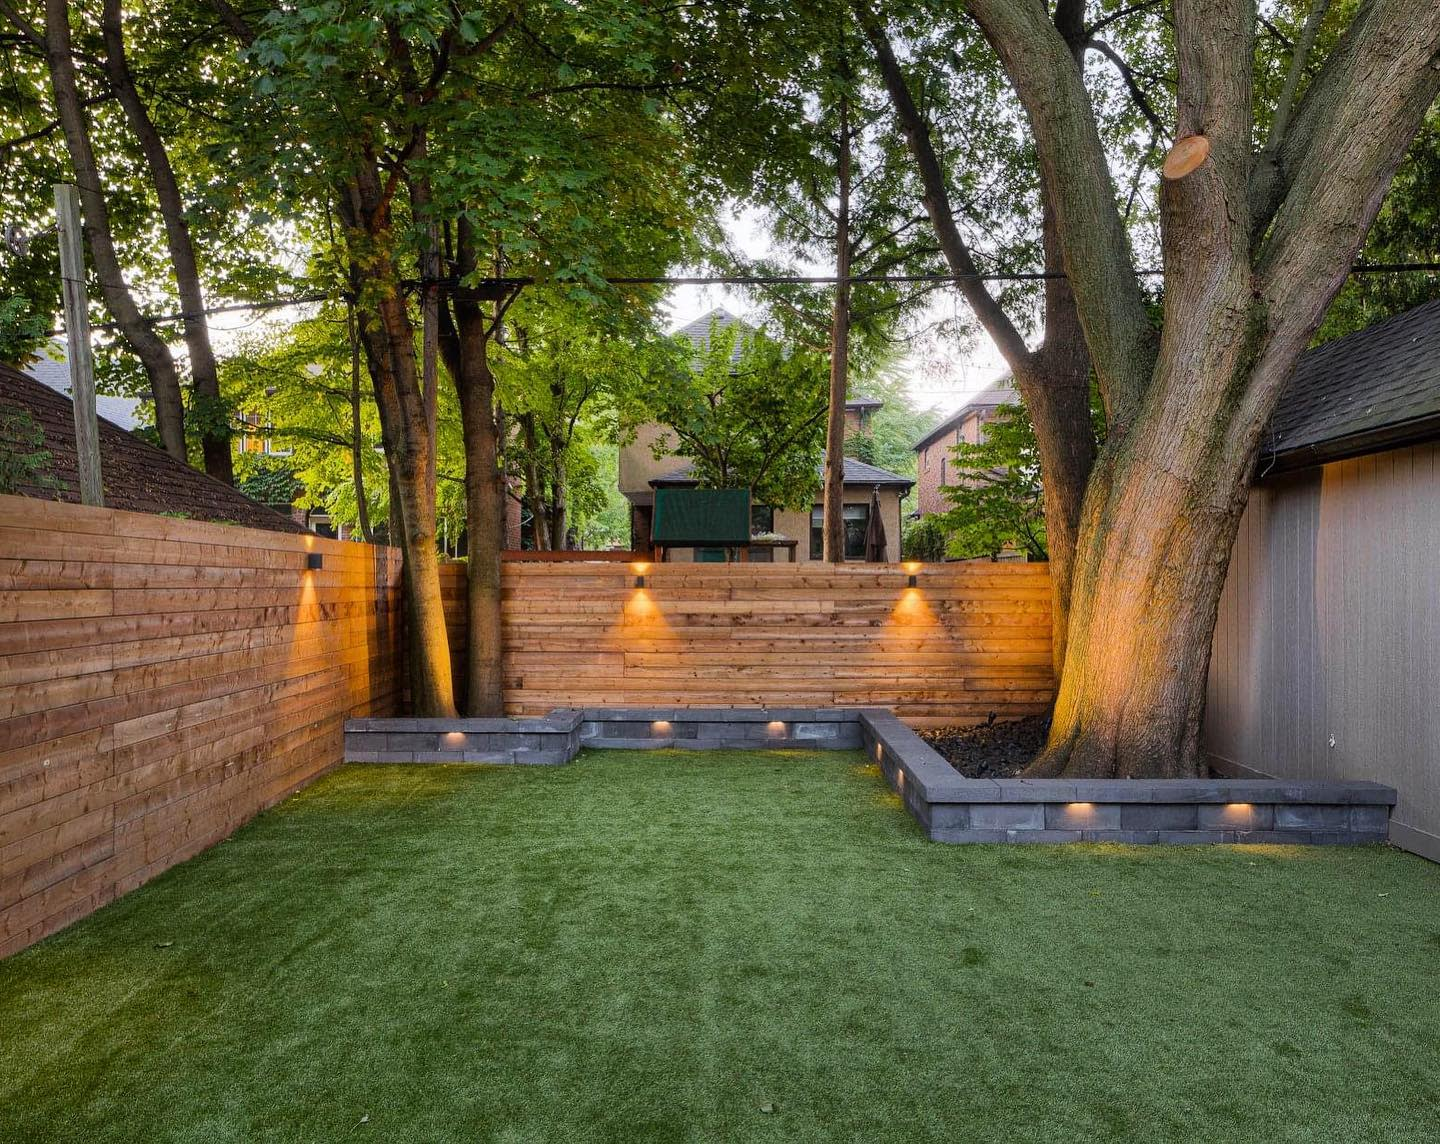 Lawn Backyard Landscaping Ideas on a Budget -kerenabu.mecontracting